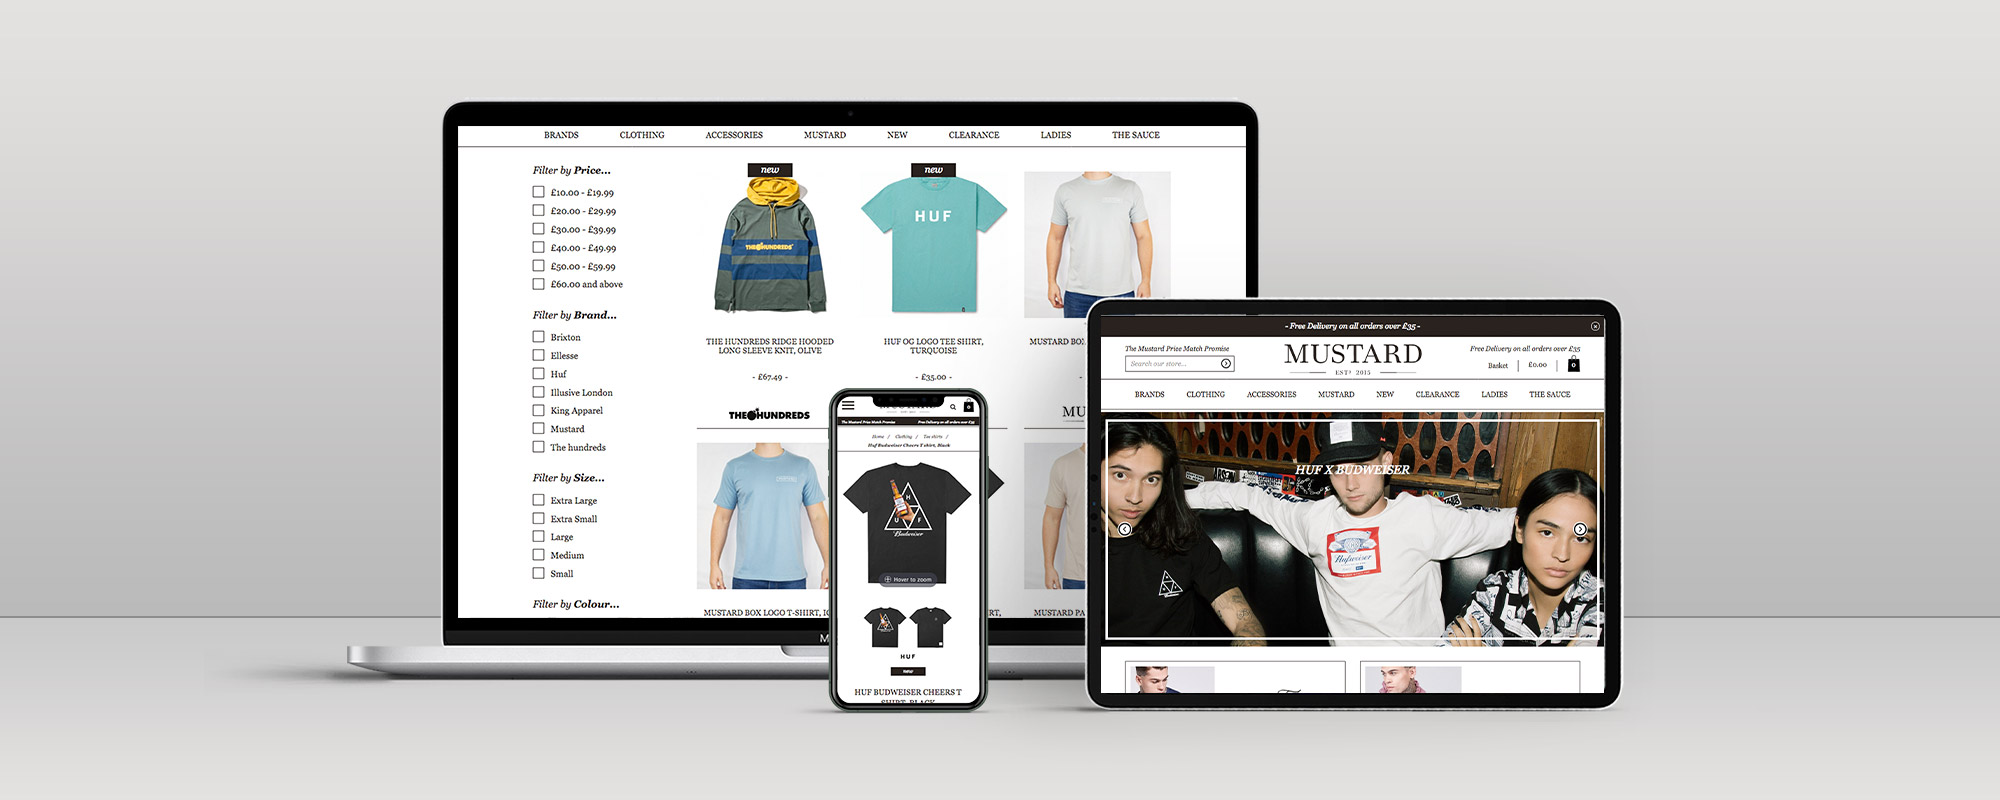 Mustard Clothing Magento Ecommerce Website Design on 3 Devices